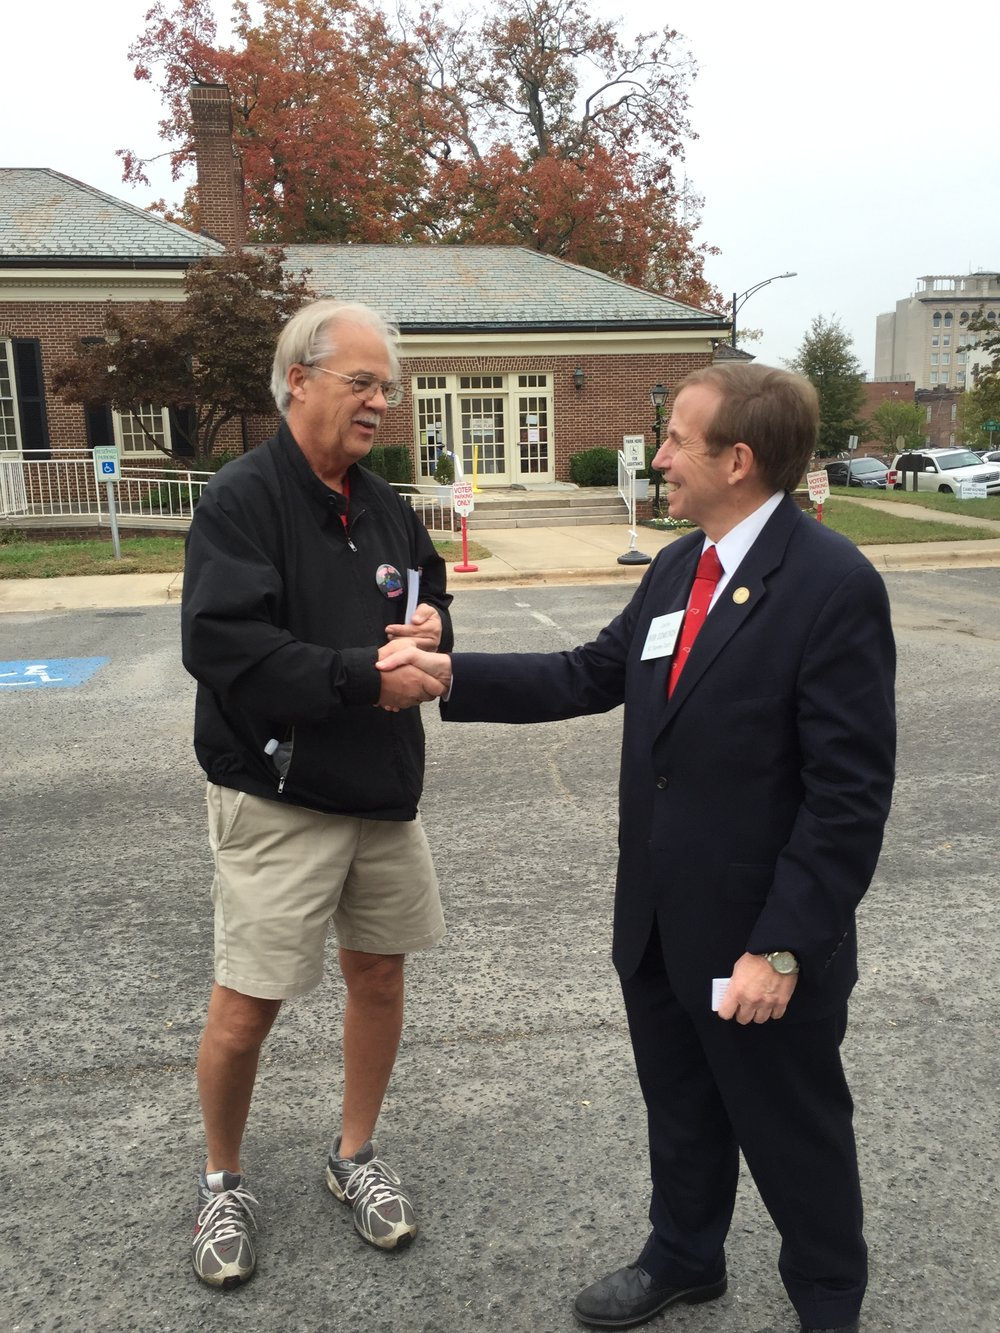 Working the early voting polls in Salisbury, November 1, 2016.